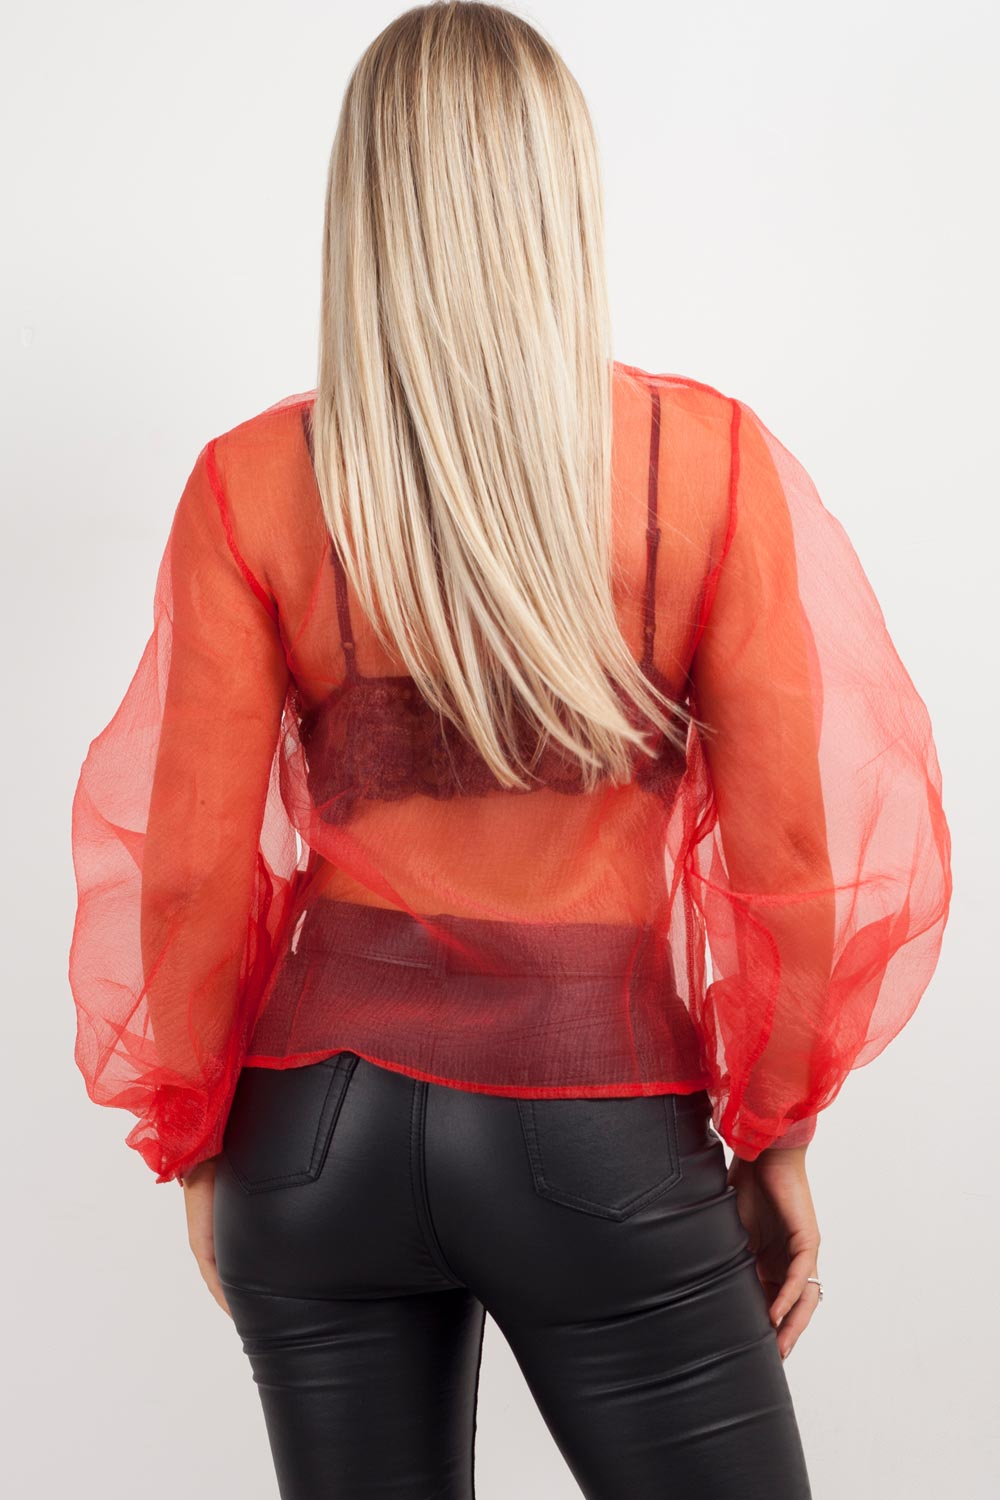 red sheer shirt womens uk